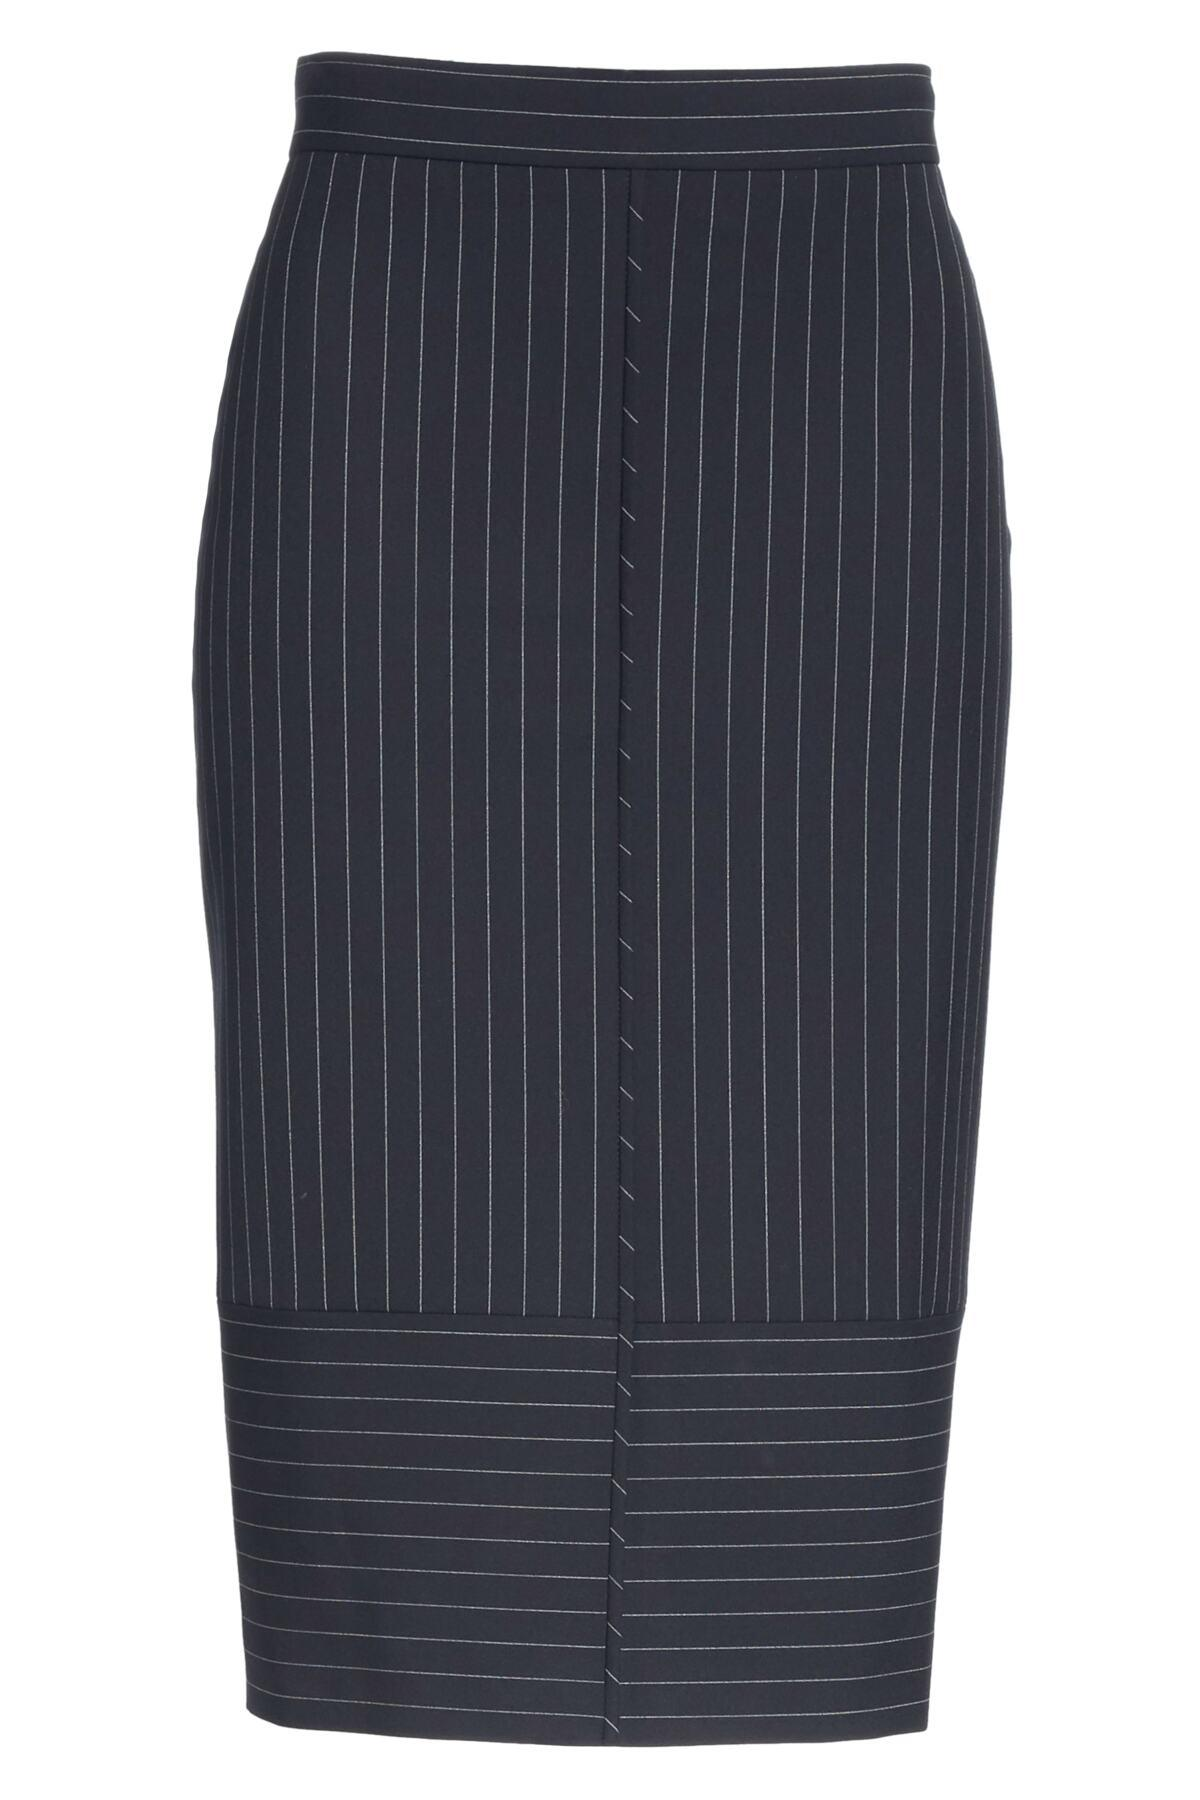 600d0eb9 BOSS - Multicolor Vunka Mix Pinstripe Suit Skirt - Lyst. View fullscreen